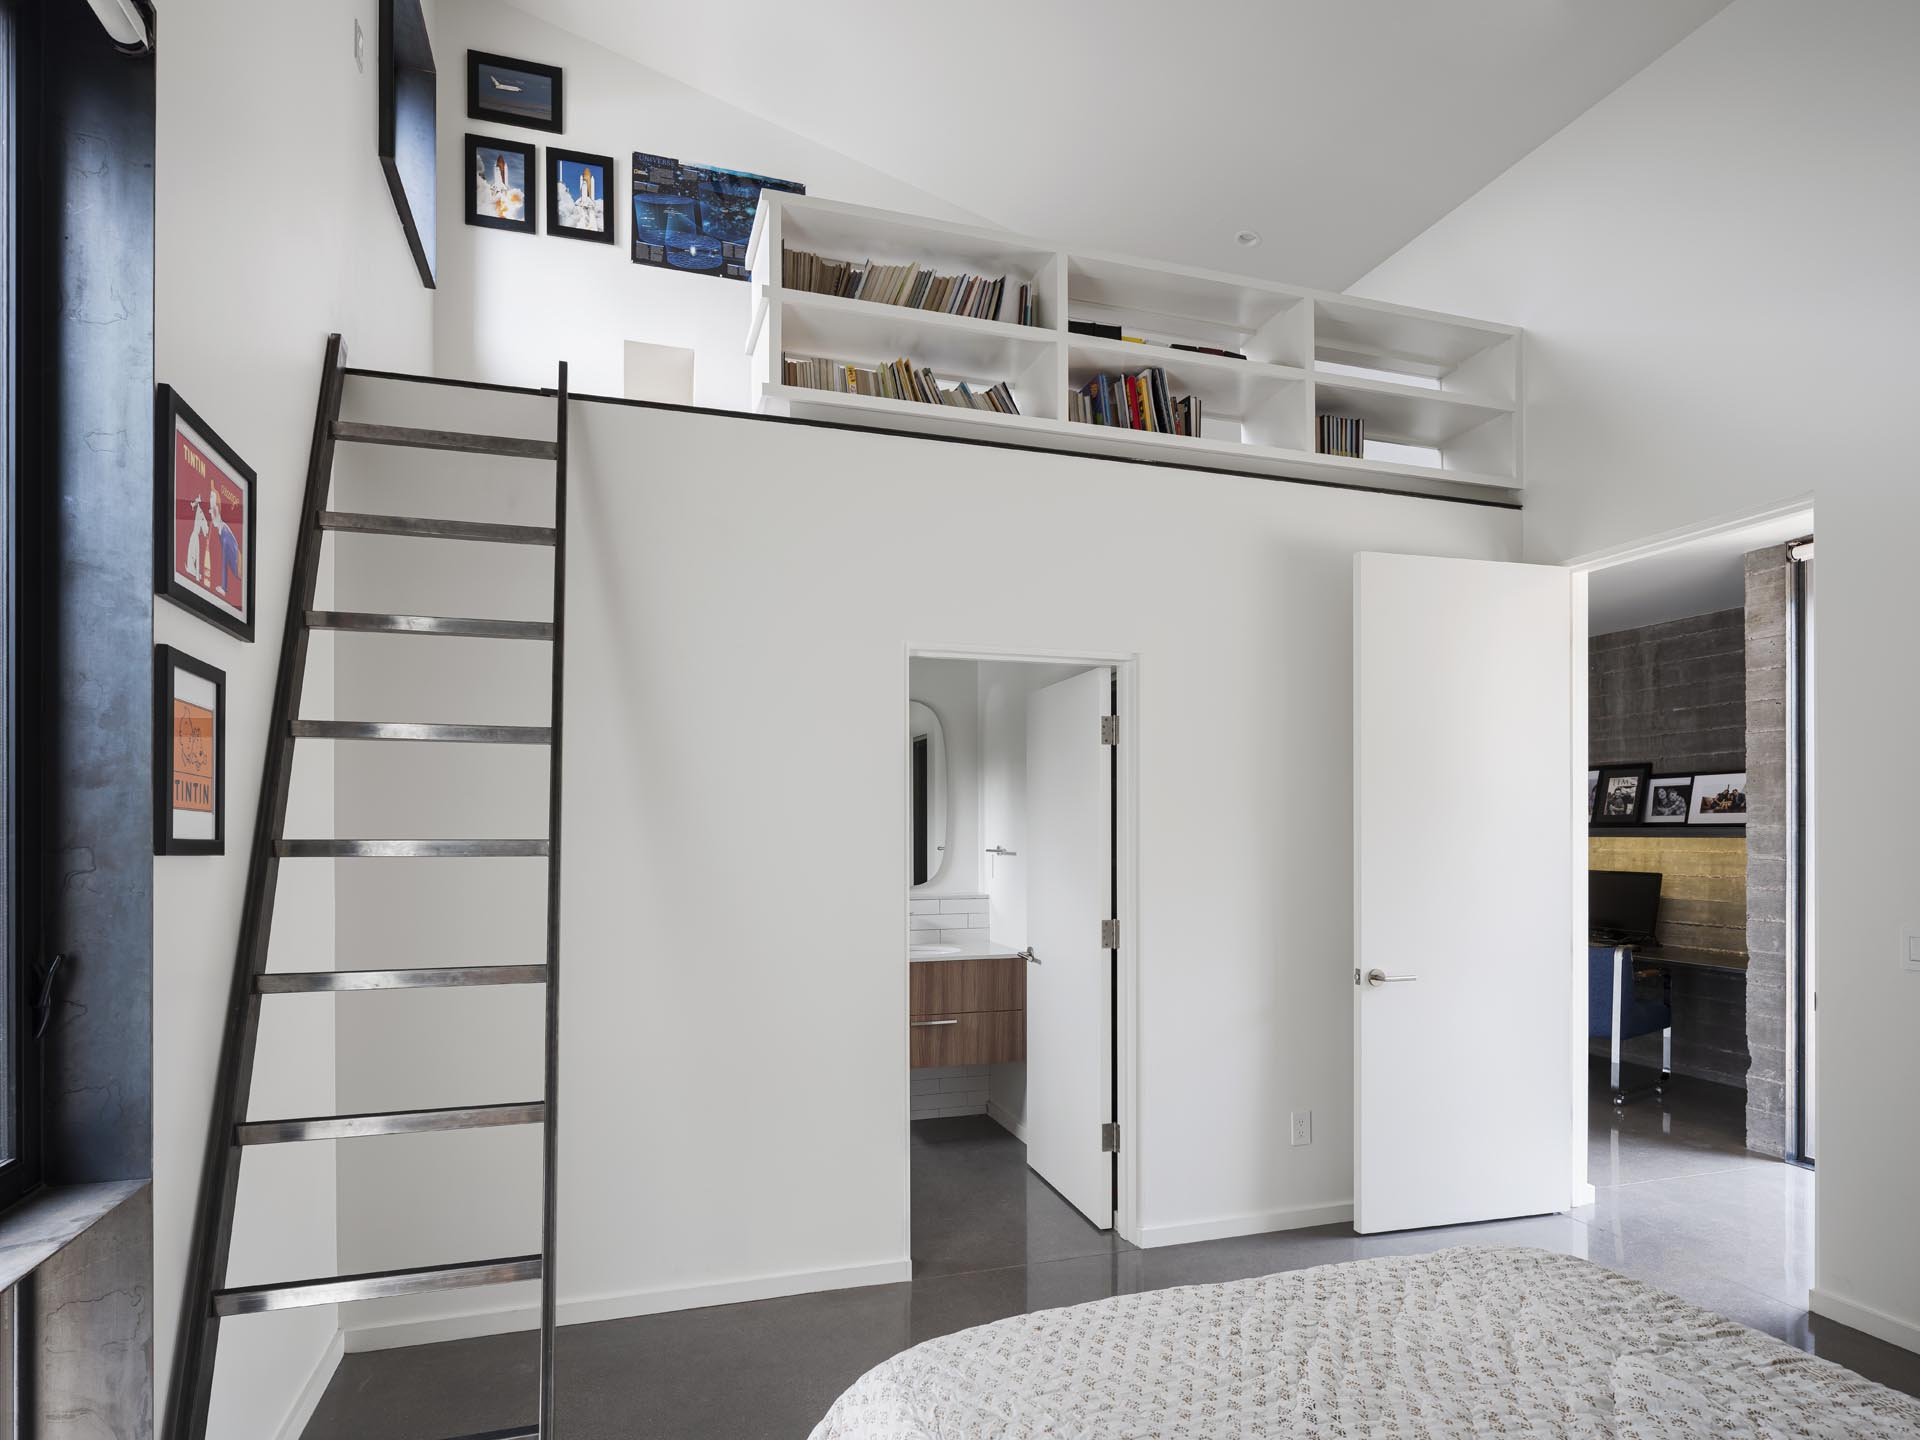 In this modern bedroom, there's a lofted reading area and an en-suite bathroom.